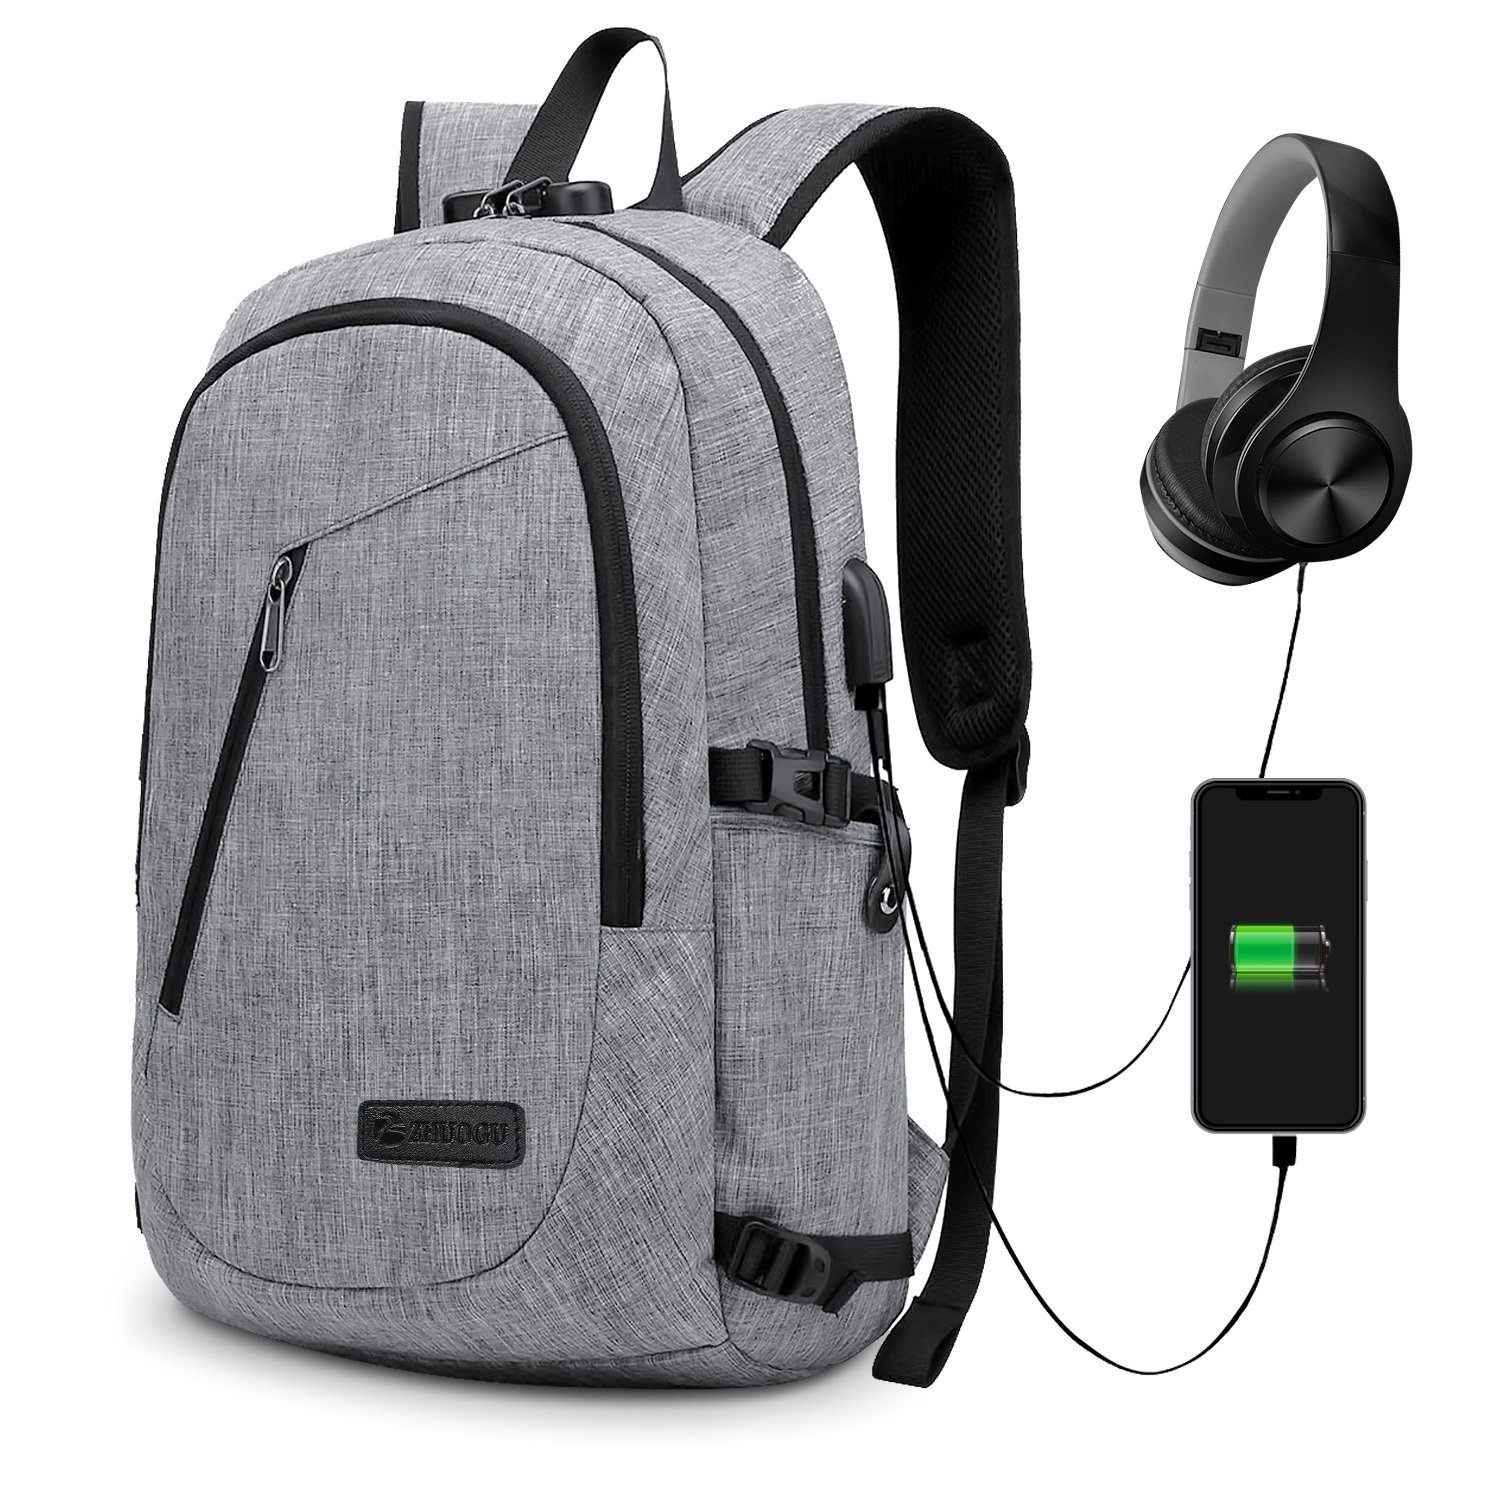 Anti-Theft Backpack, GIM Business Laptop Backpack with USB Charging Port and Earphone Port Slim Water Resistant Bag Daypack 15.6 Inch Computer Rucksack for Work College (3-Upgraded Grey)